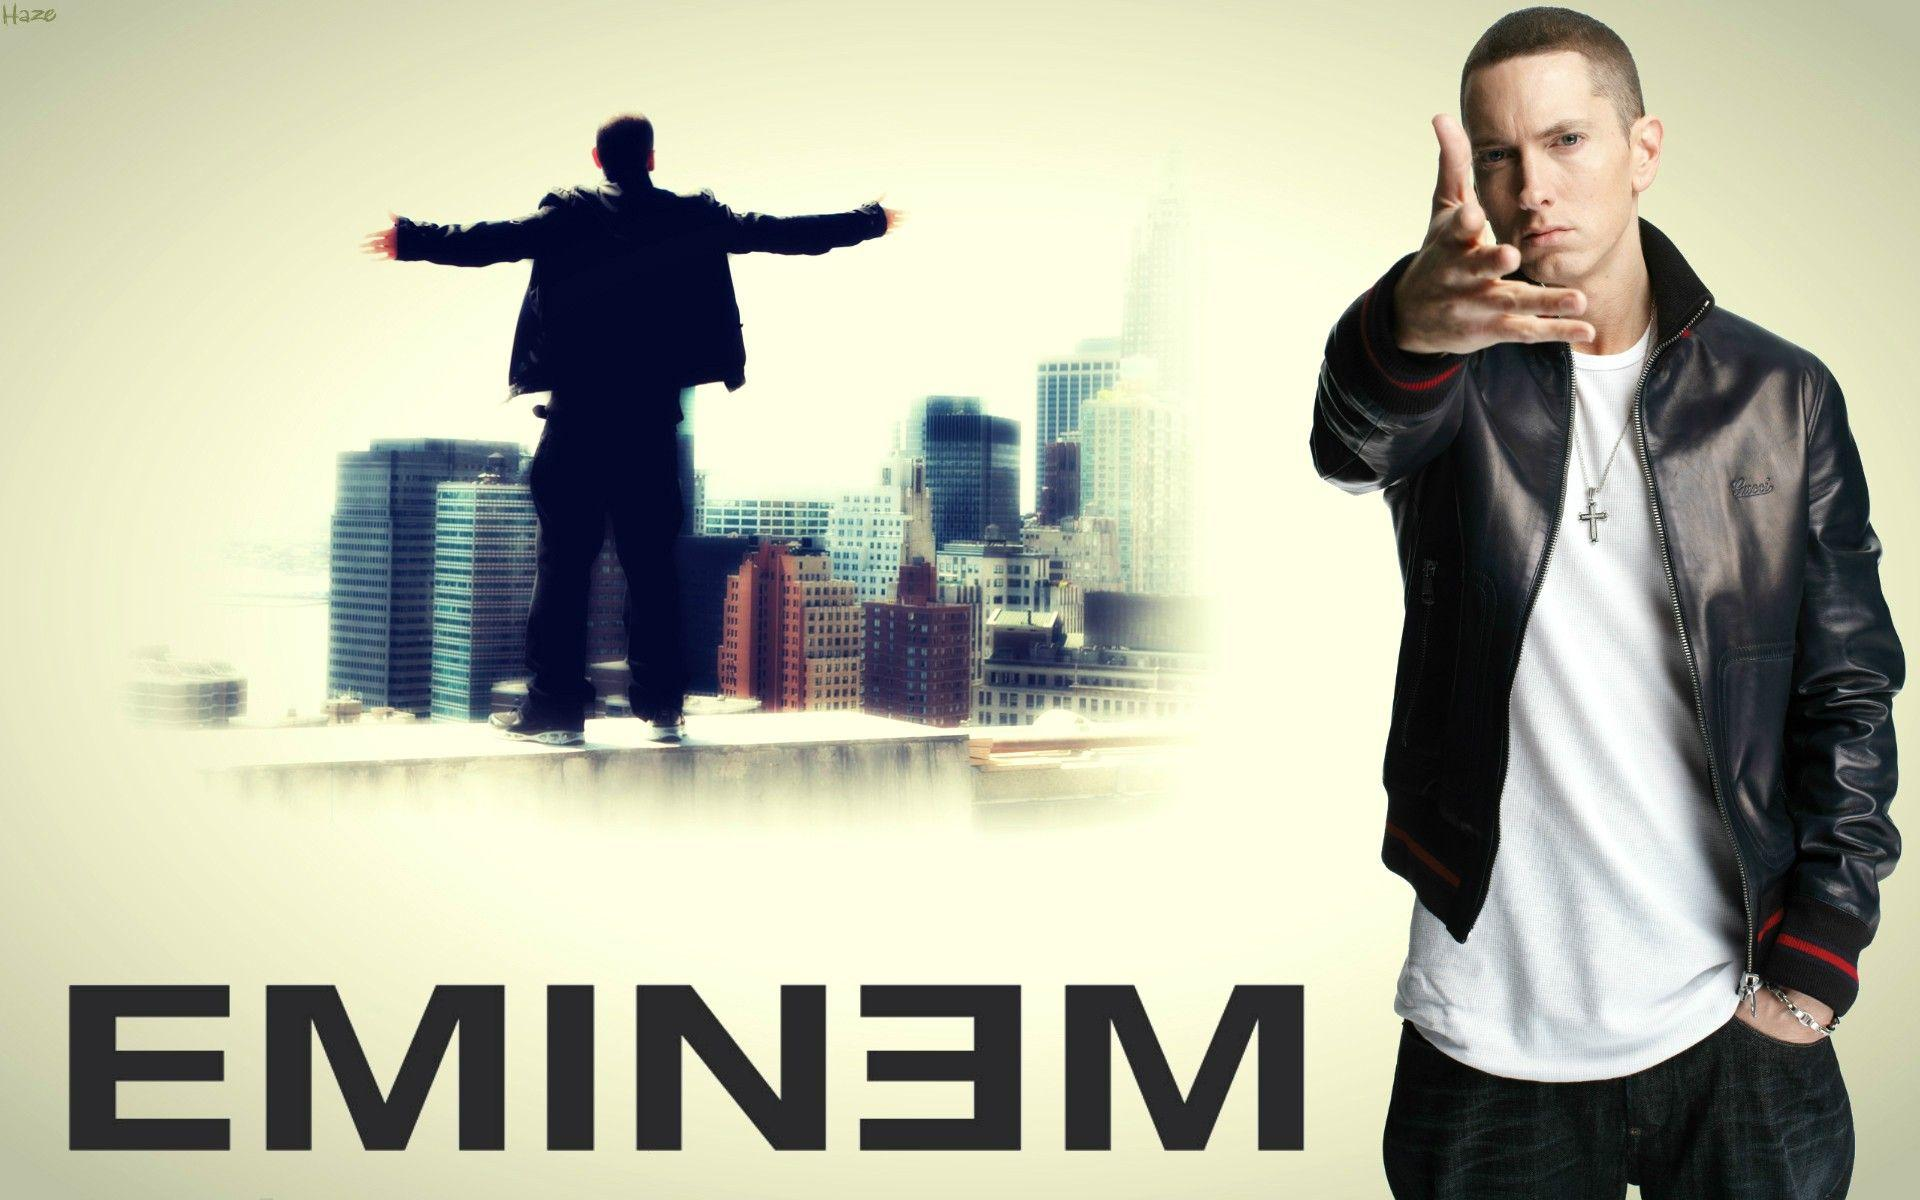 Eminem Wallpapers Not Afraid - Wallpaper Cave